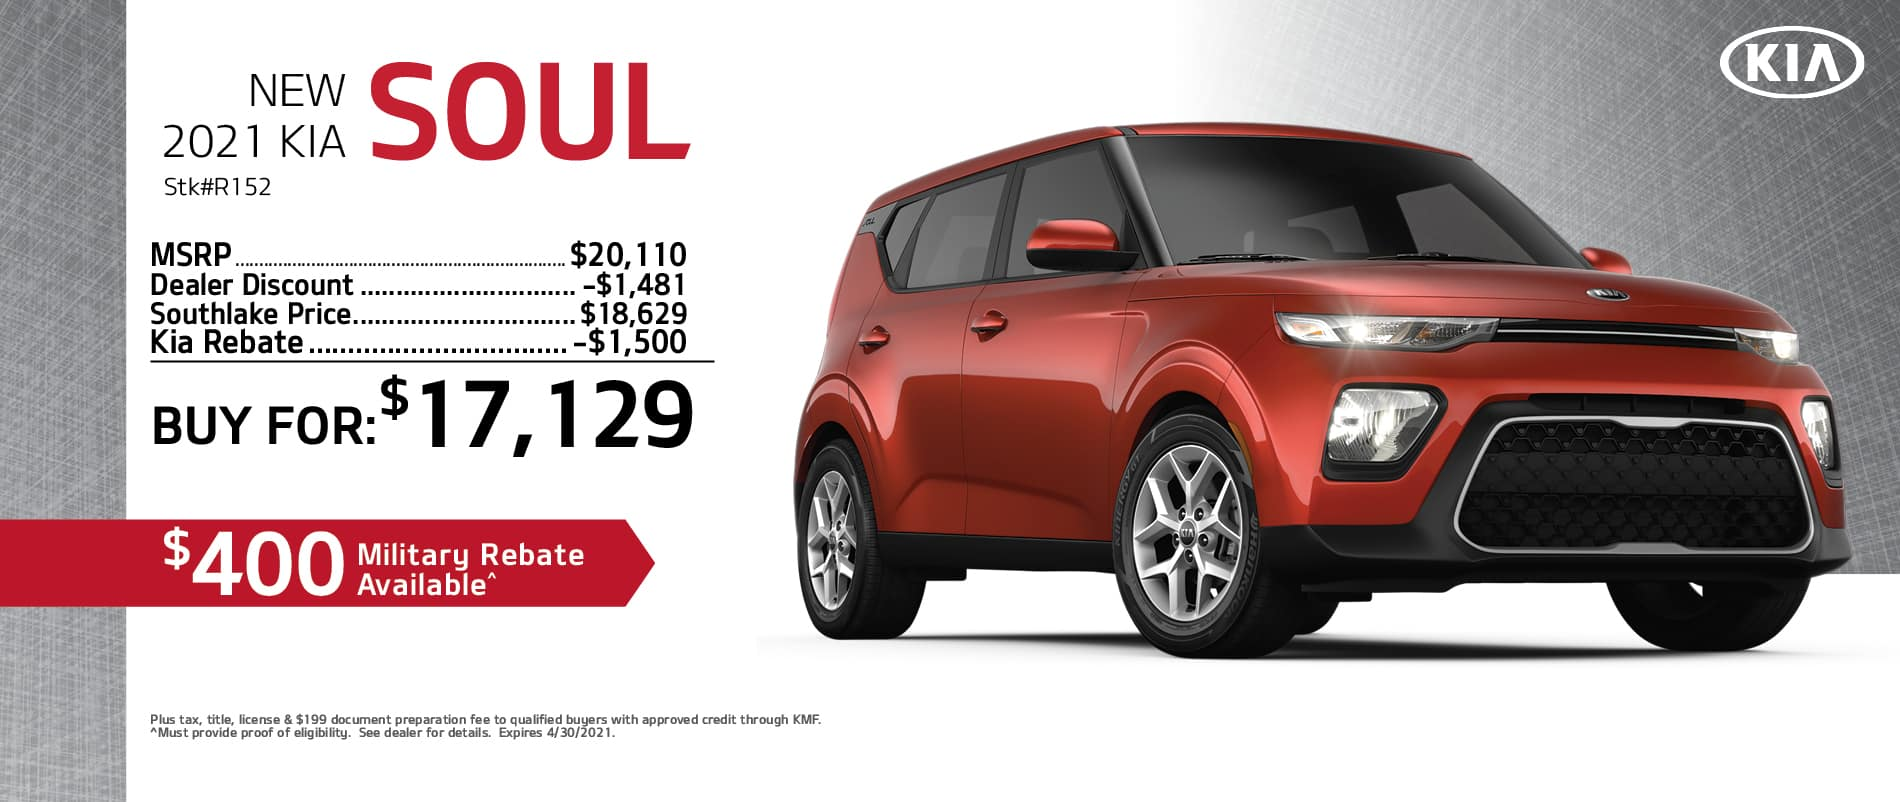 2021 Kia Soul Buy Or Lease Offer | Merrillville, Indiana